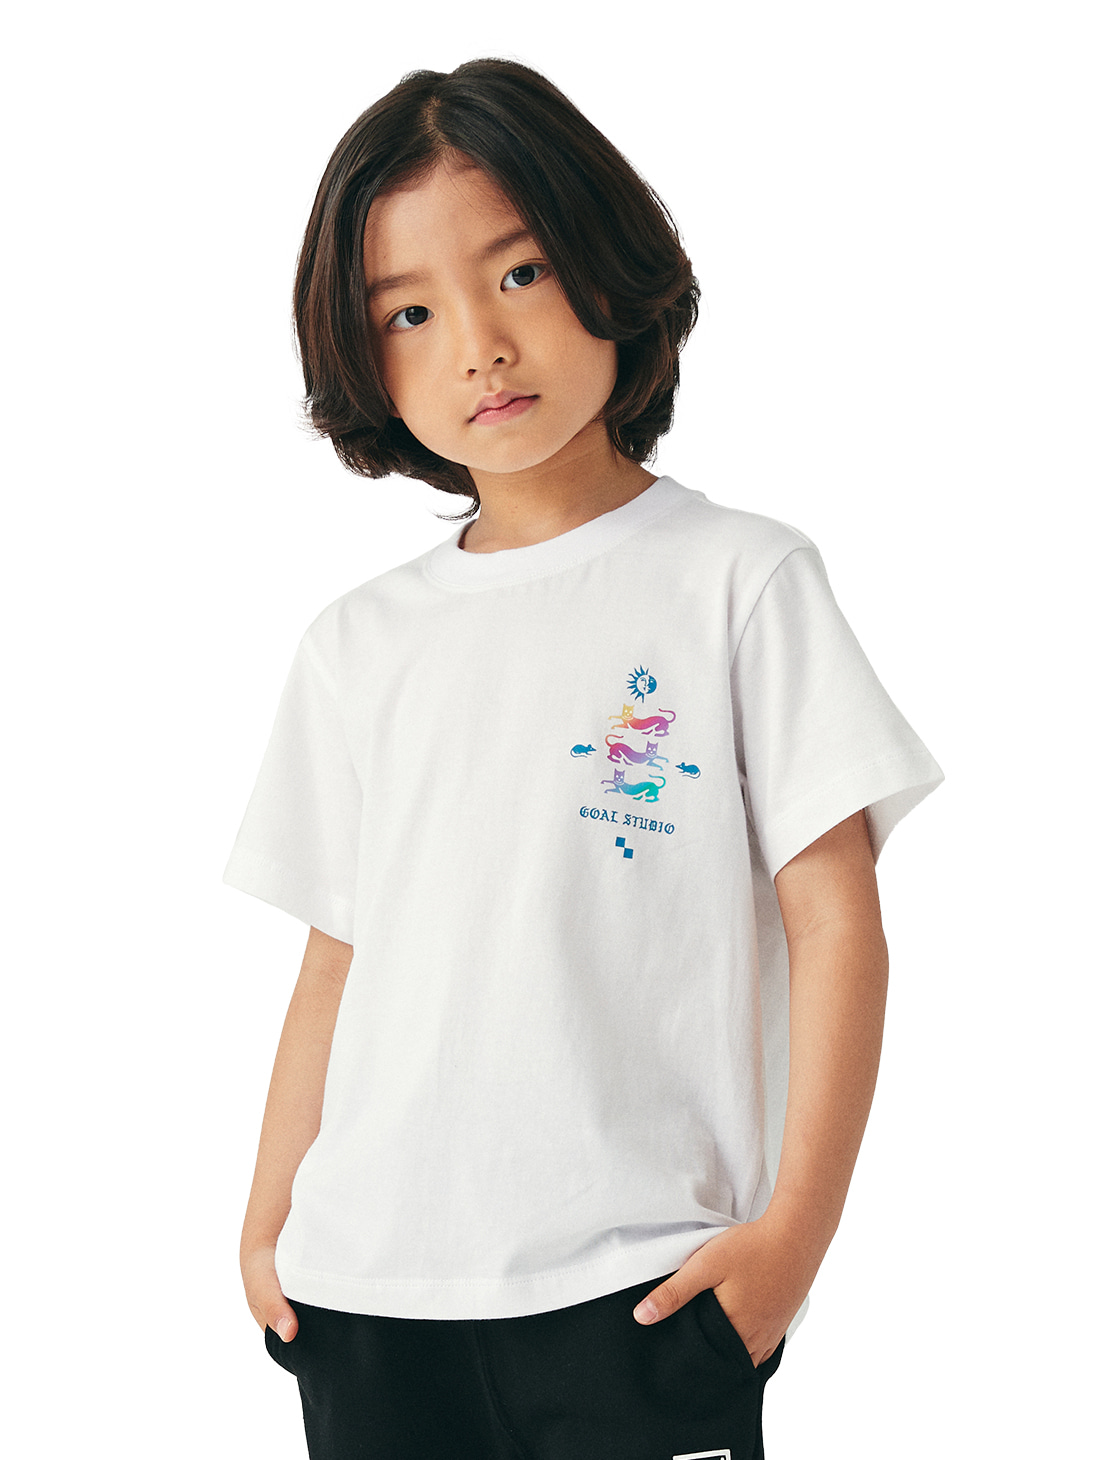 GOALSTUDIO (KIDS) MC EMBLEM GRAPHIC TEE - WHITE